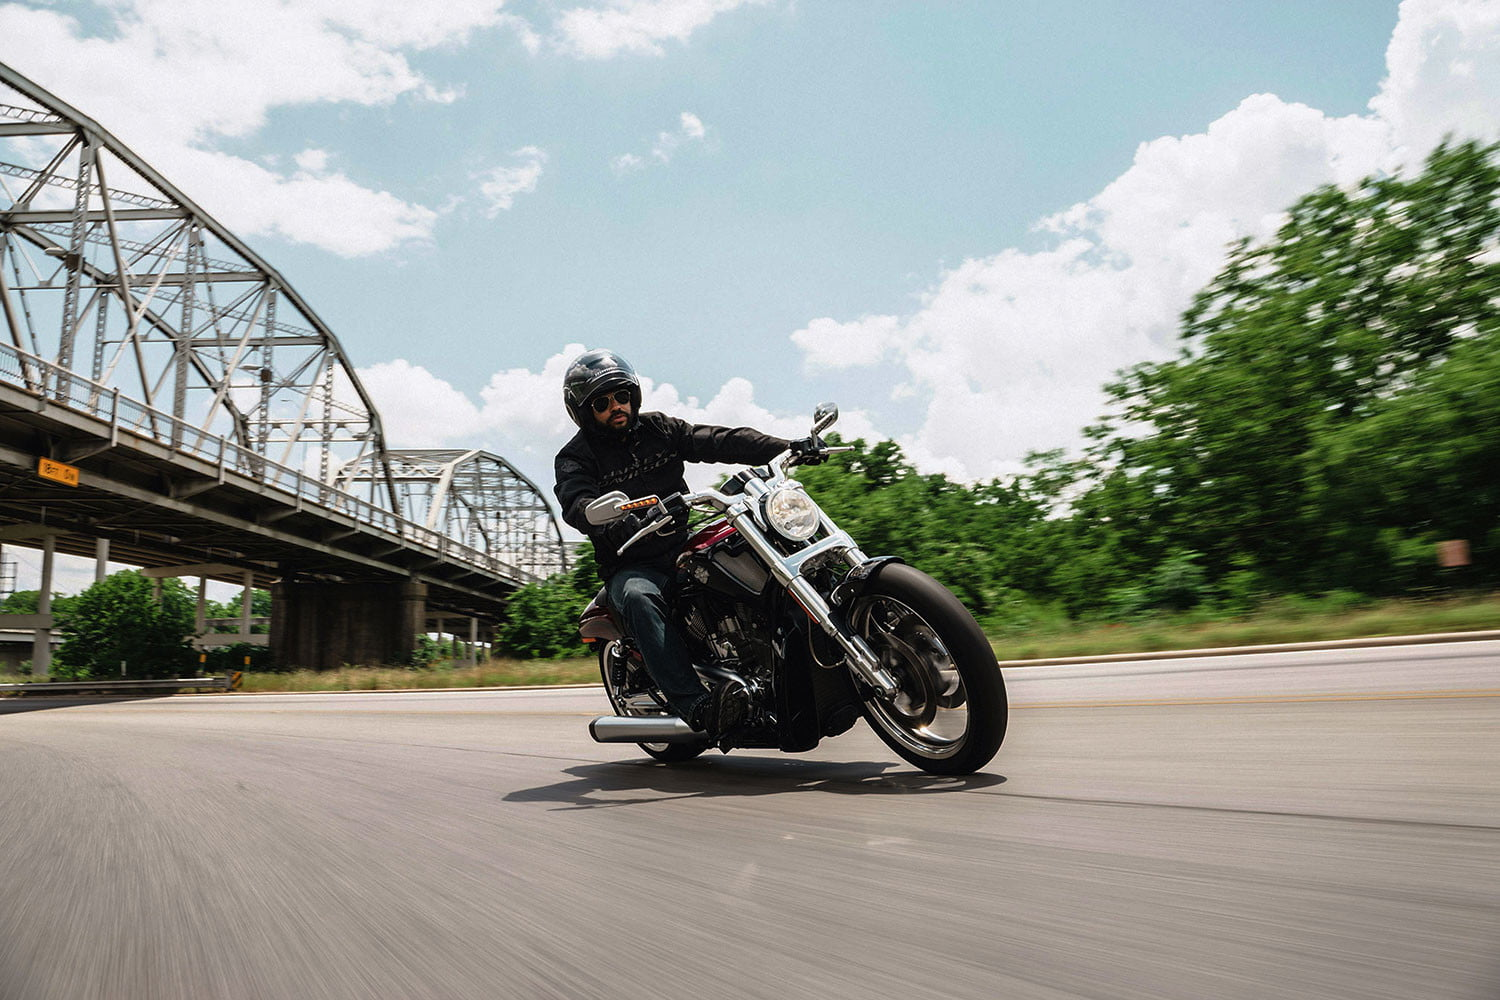 worlds fastest motorcycles harley davidson vrod muscle 0003